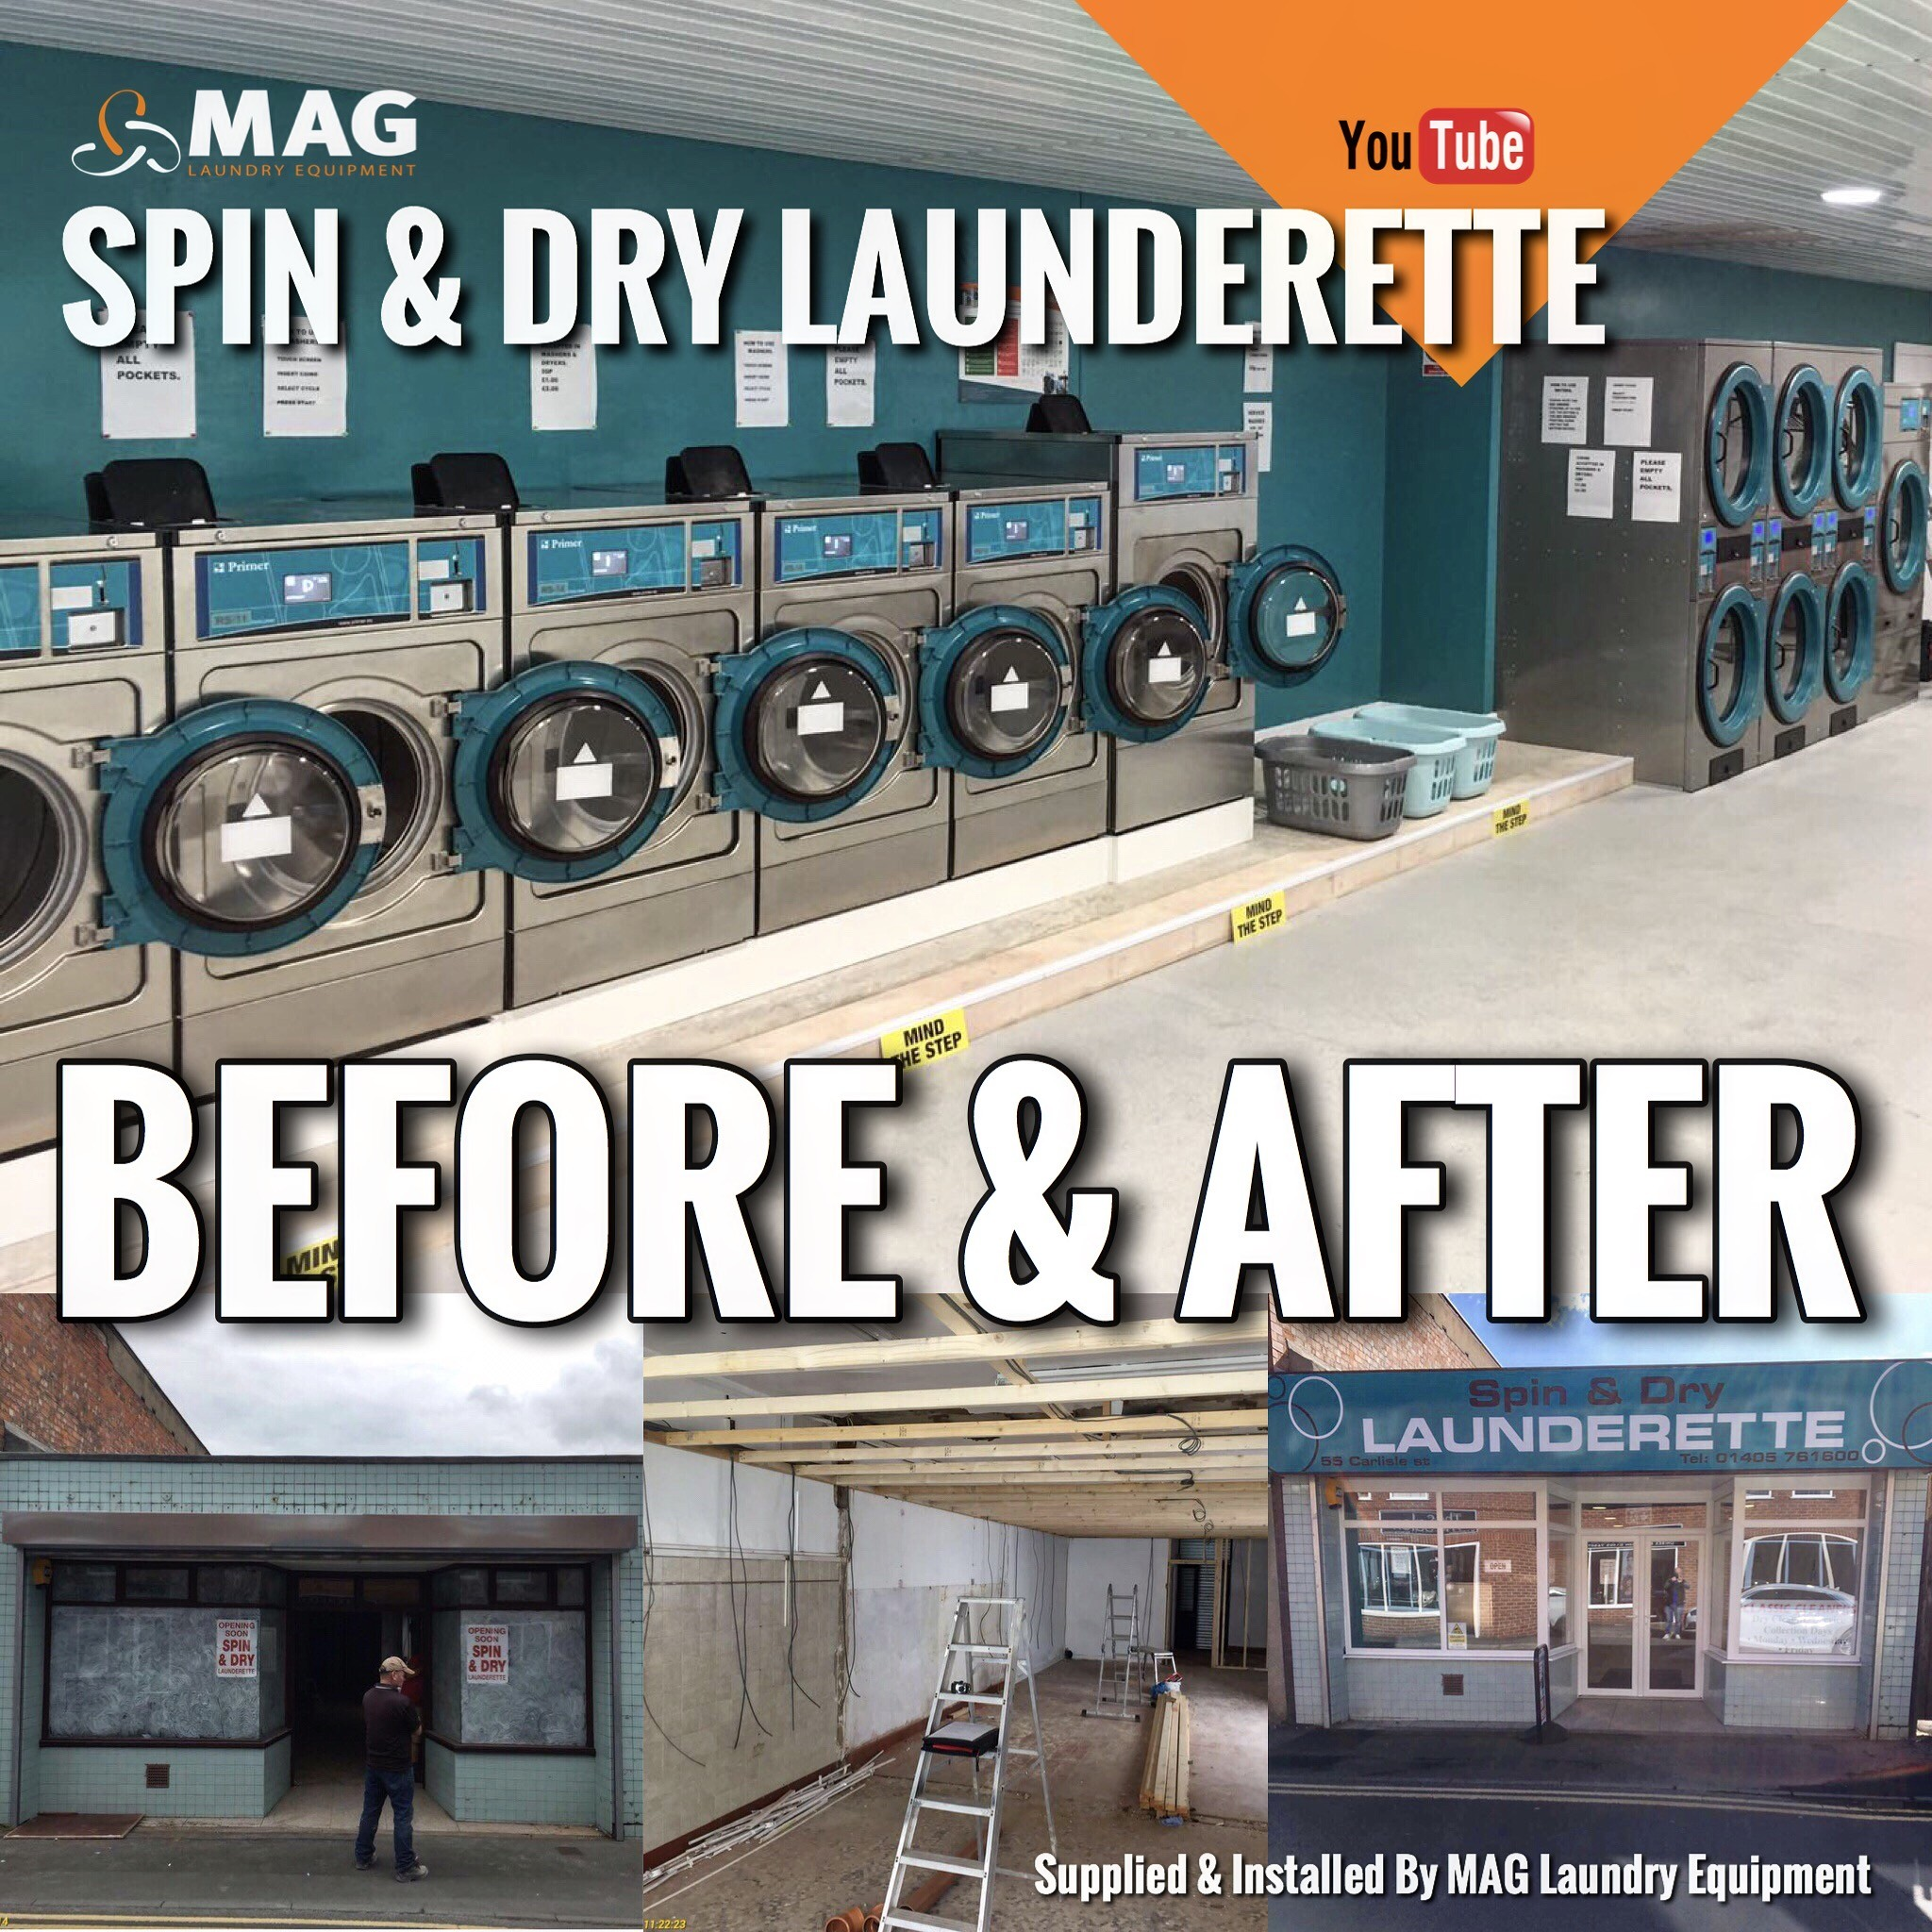 Set up your own laundrette with MAGs design & planning services. Industrial Washing Machine.